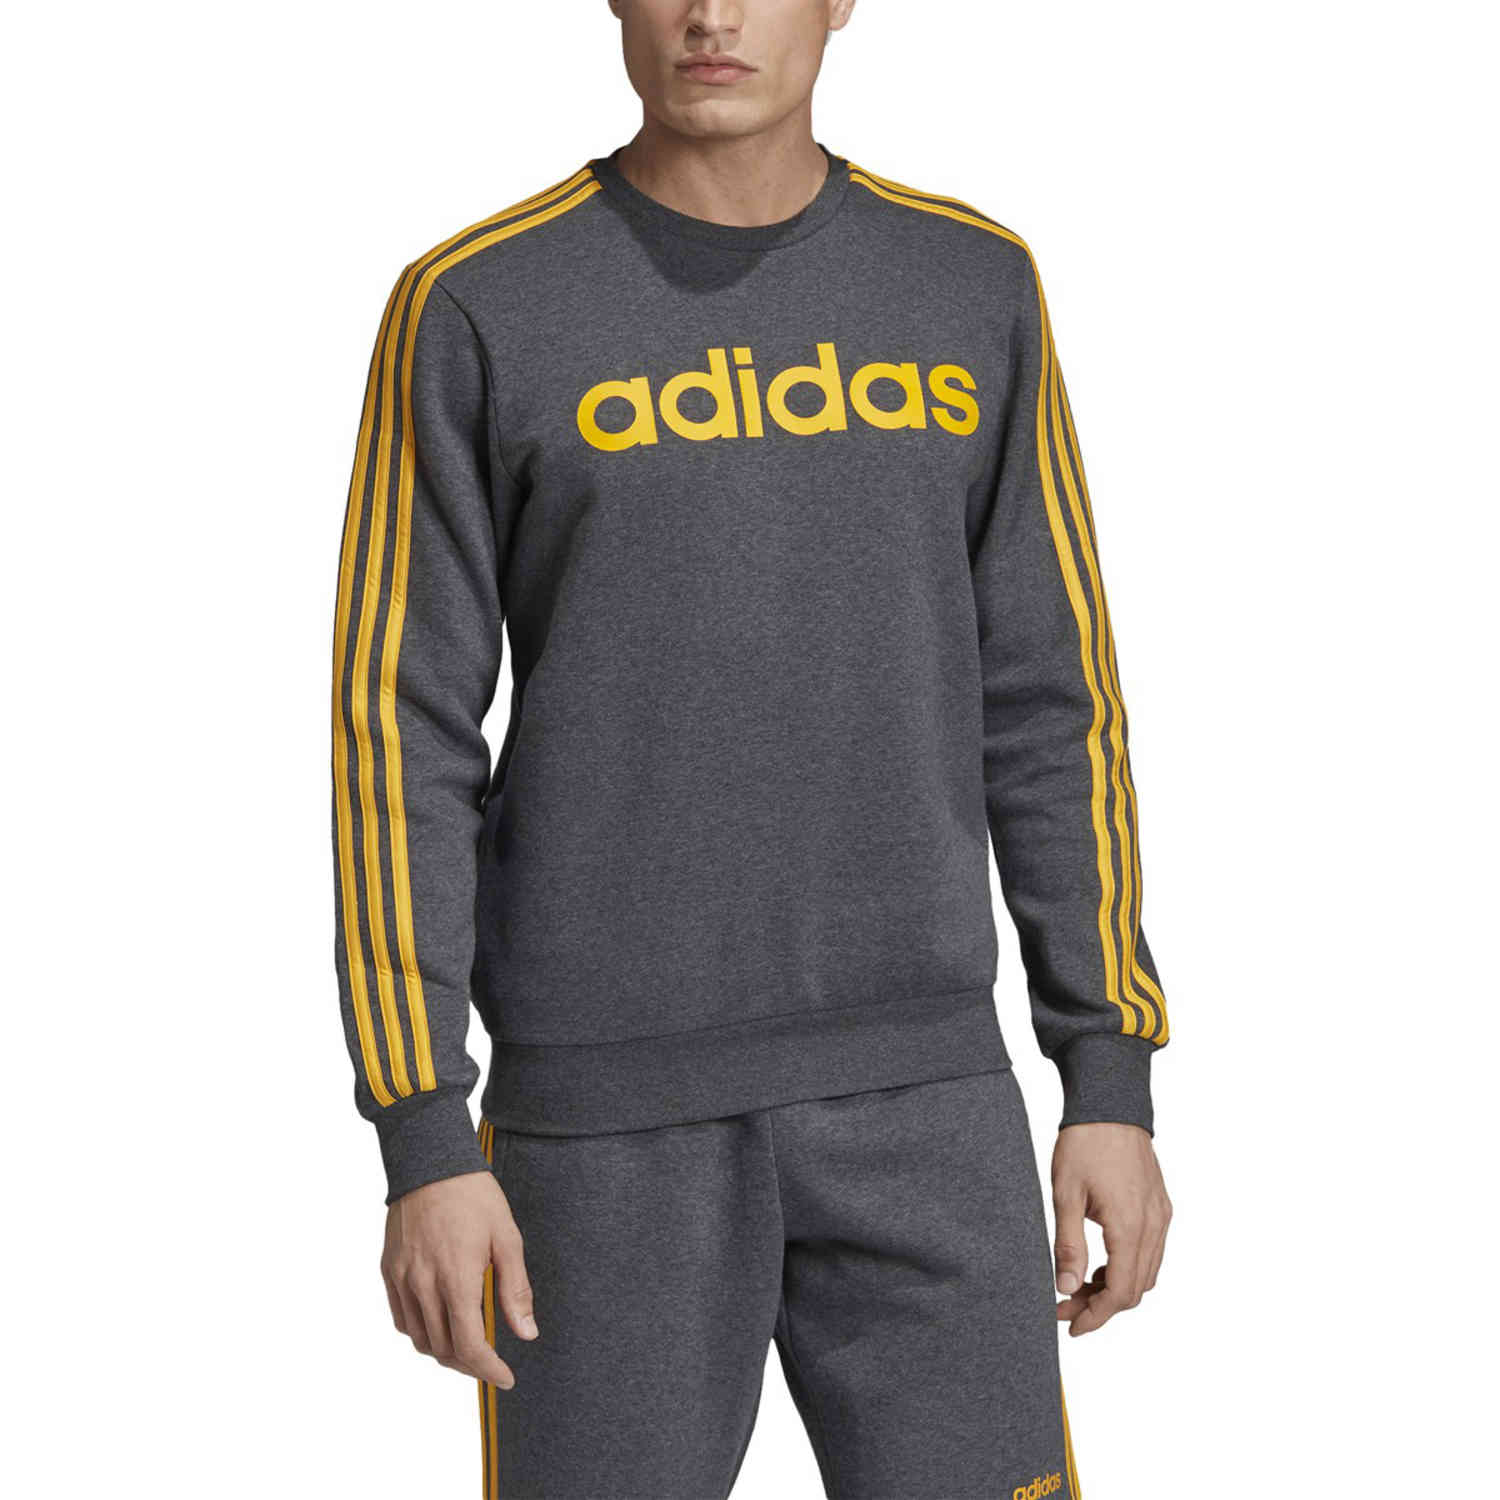 3 stripes adidas shirt